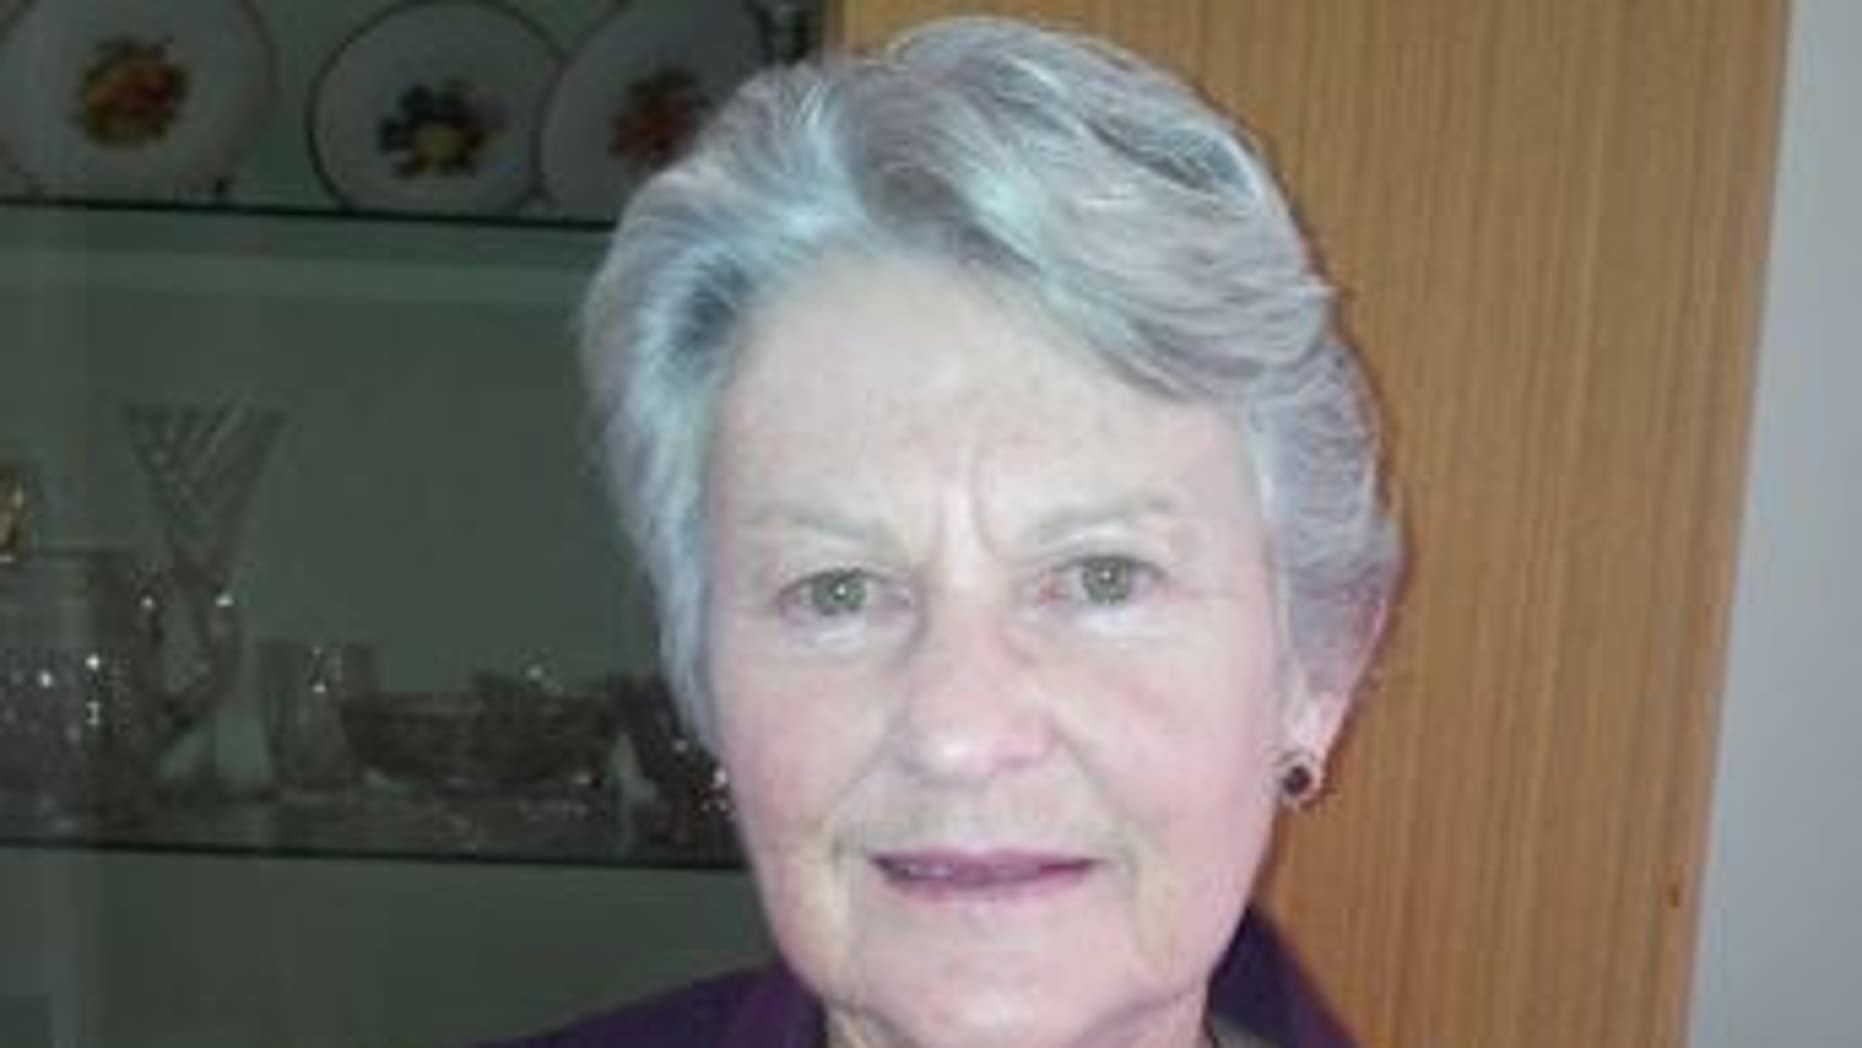 Anne Cameron went missing Tuesday in Port Douglas, Australia.